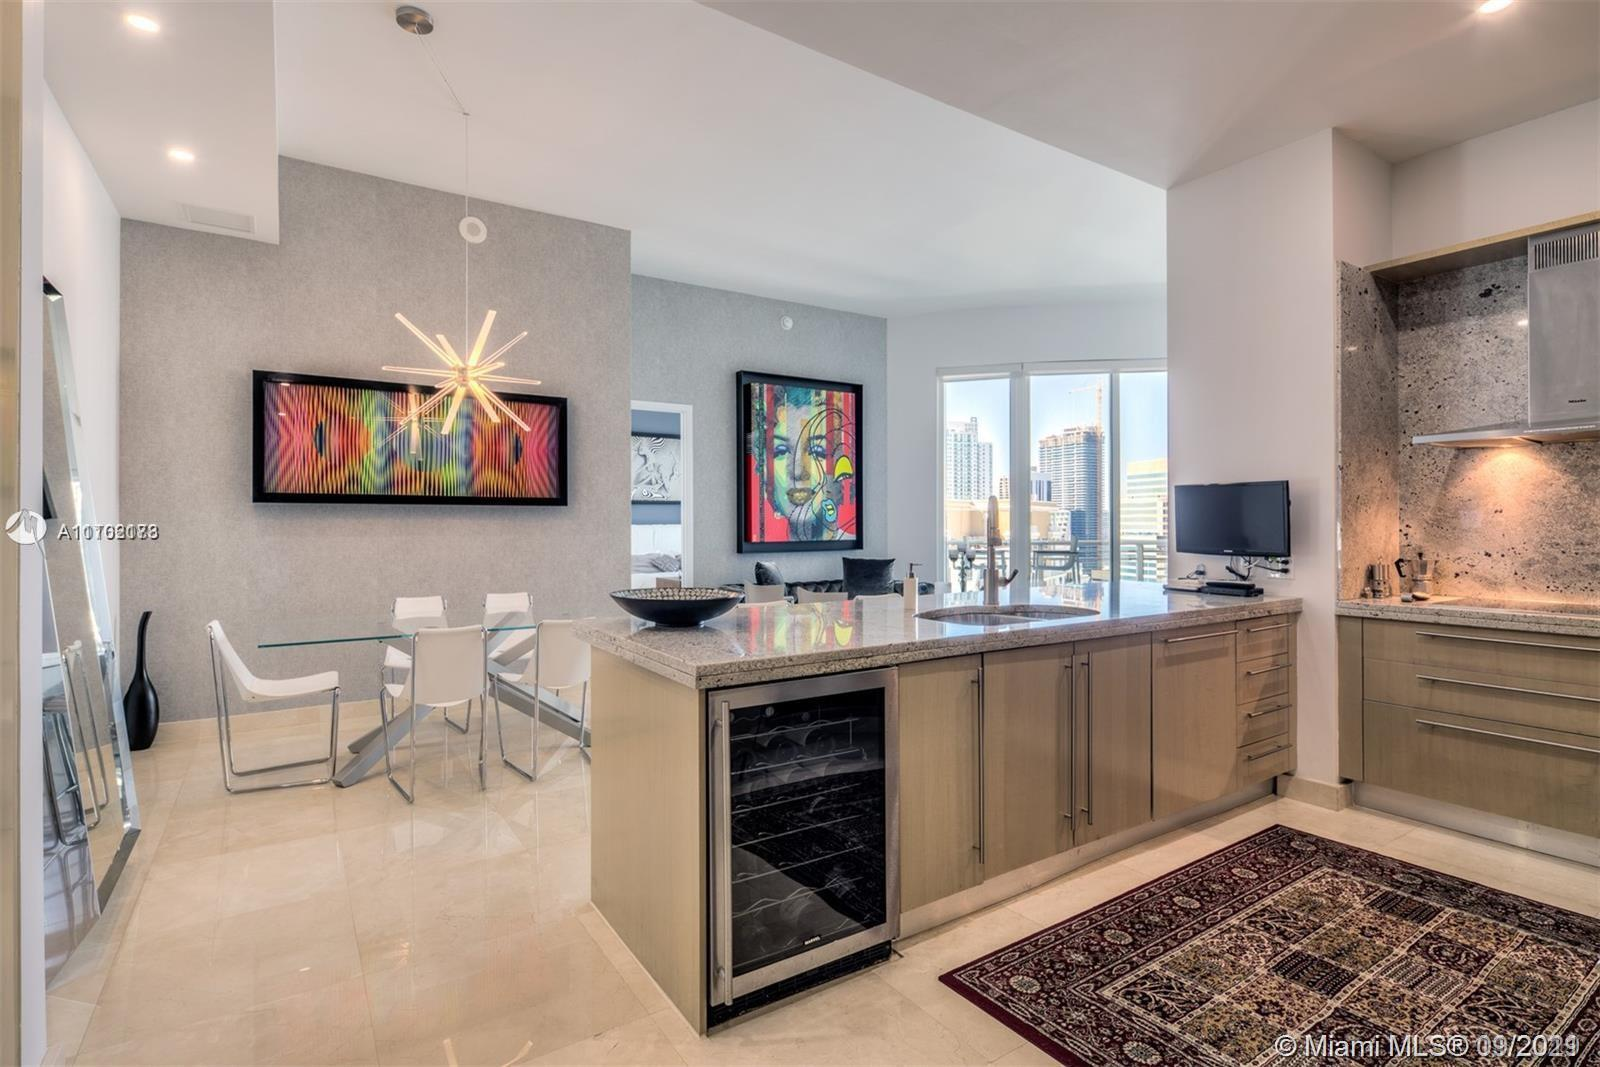 BEAUTIFUL UNIT.  ASIA CONDO 2 BEDROOMS AND 2.5 BATHROOMS WITH MARBLE FLOORS, HIGH CEILINGS, PRIVATE